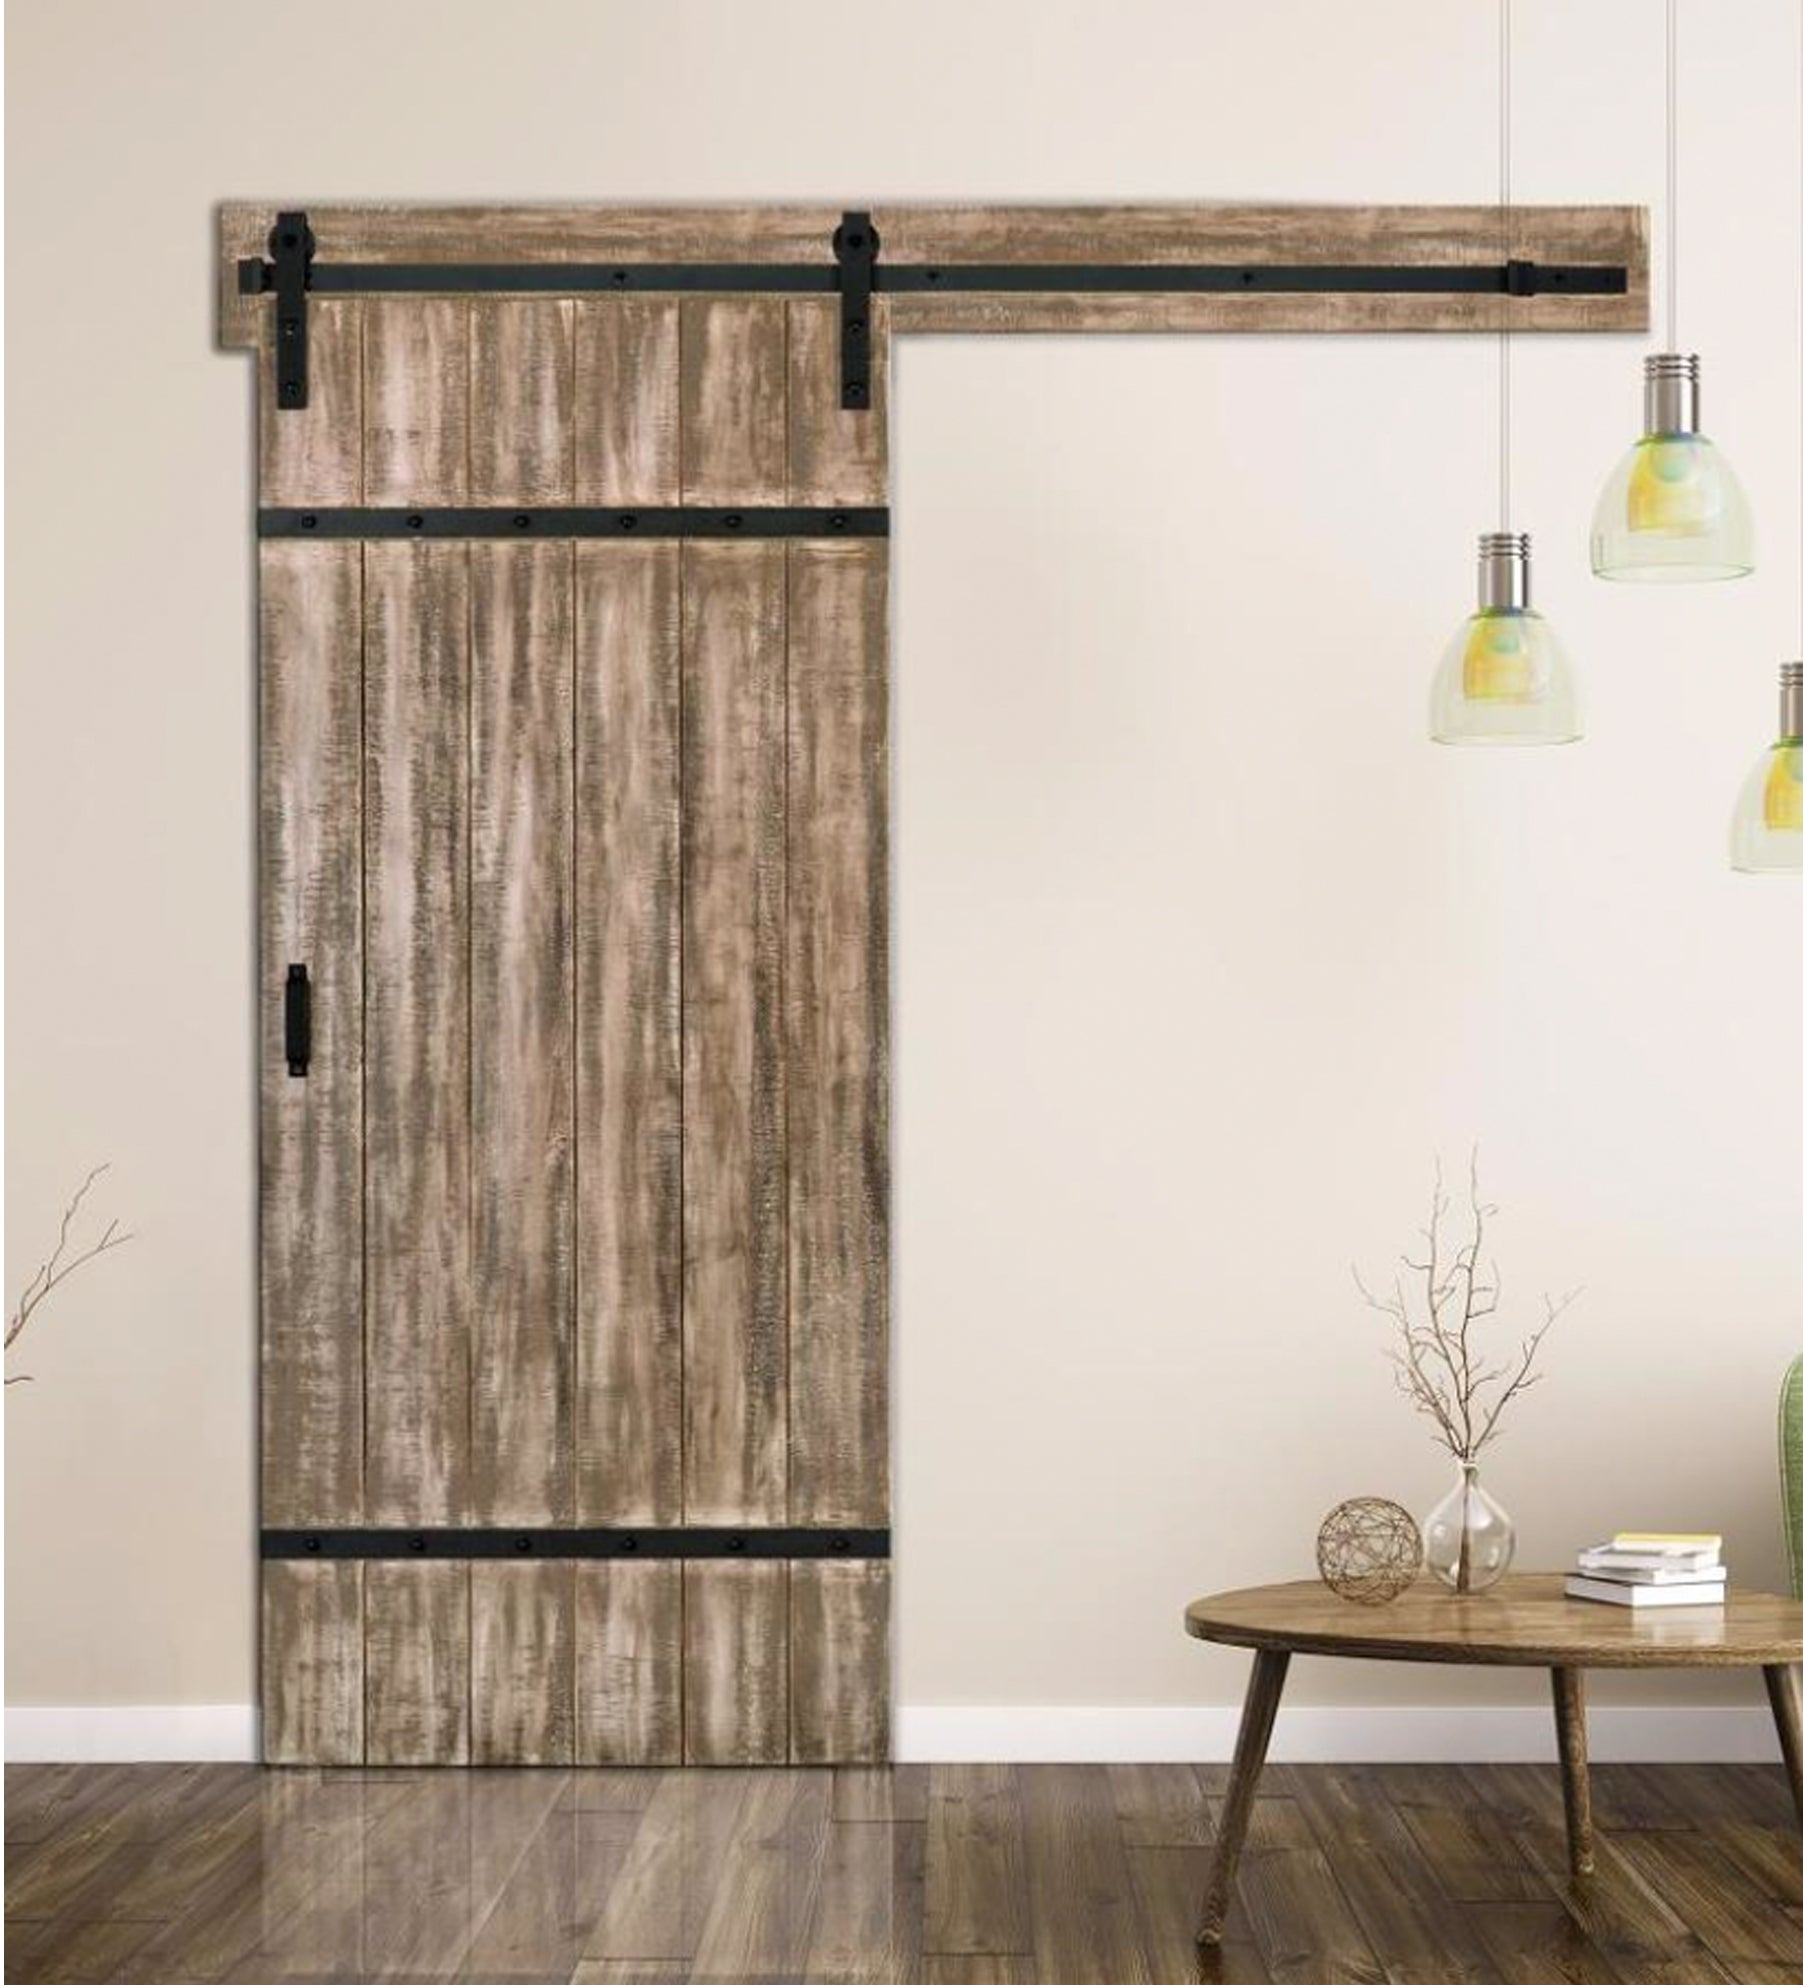 INSTALLED ReliaBilt Sandstone Stain Decor Stained Wood Barn Door w/Hardware STARTING $862